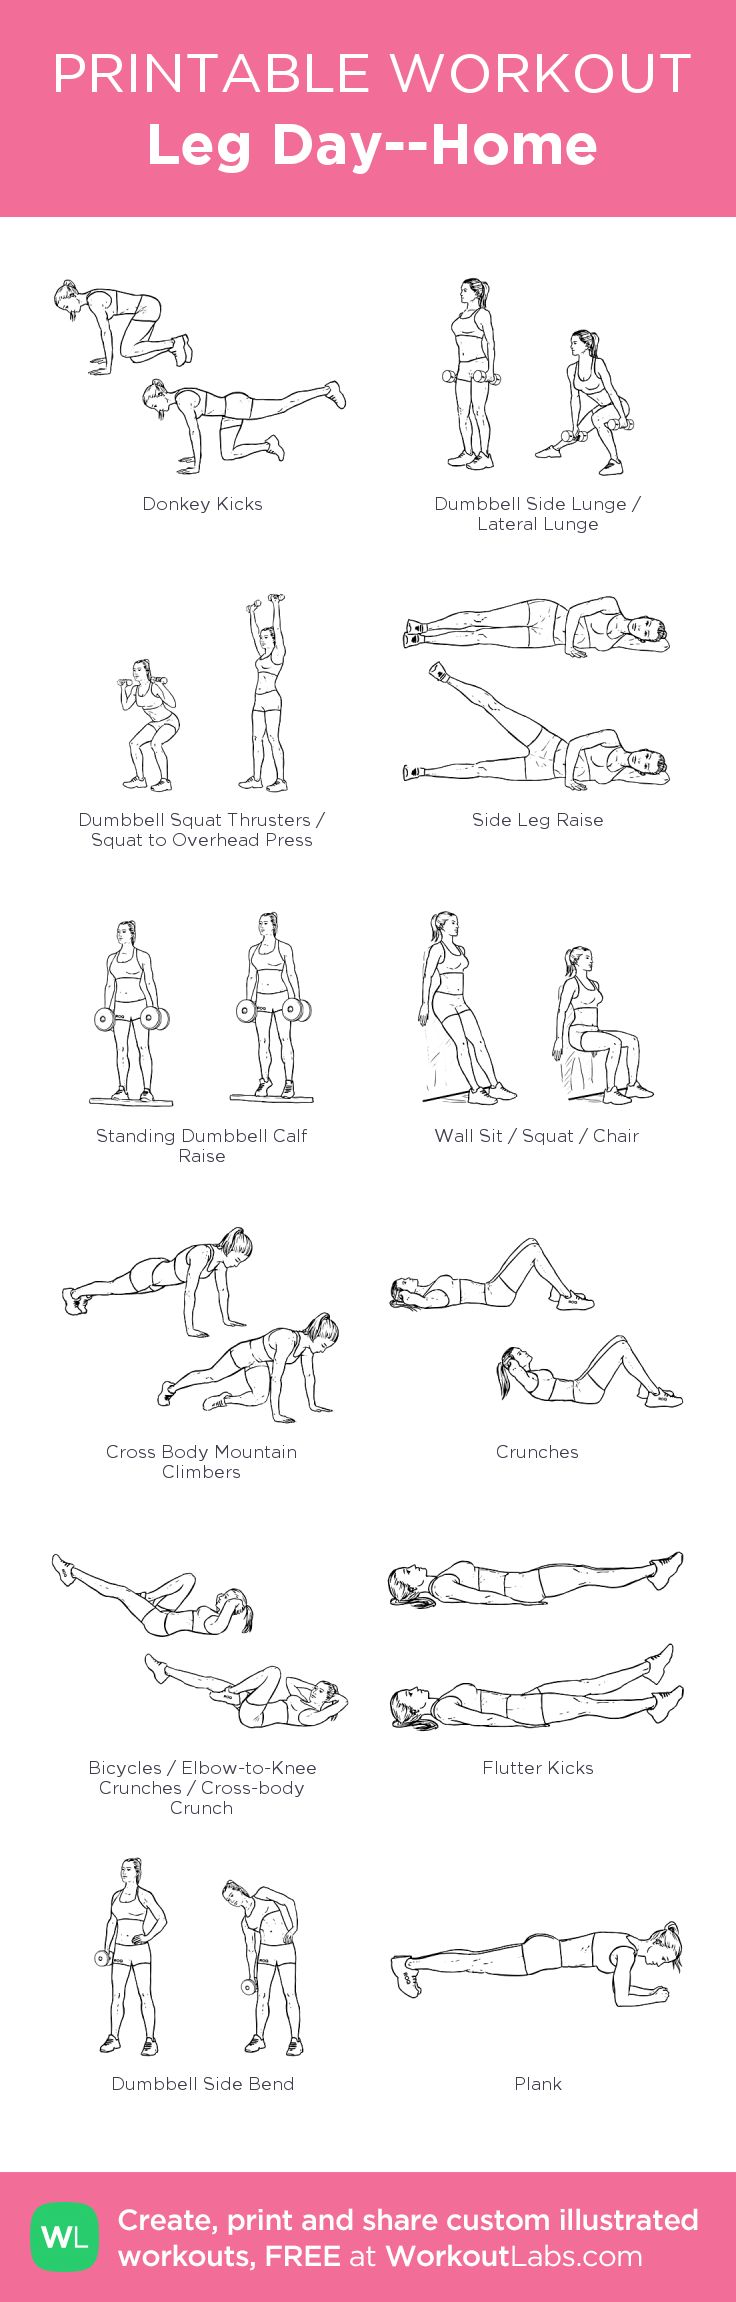 Leg Day--Home: my visual workout created at WorkoutLabs.com • Click through to customize and download as a FREE PDF! #customworkout